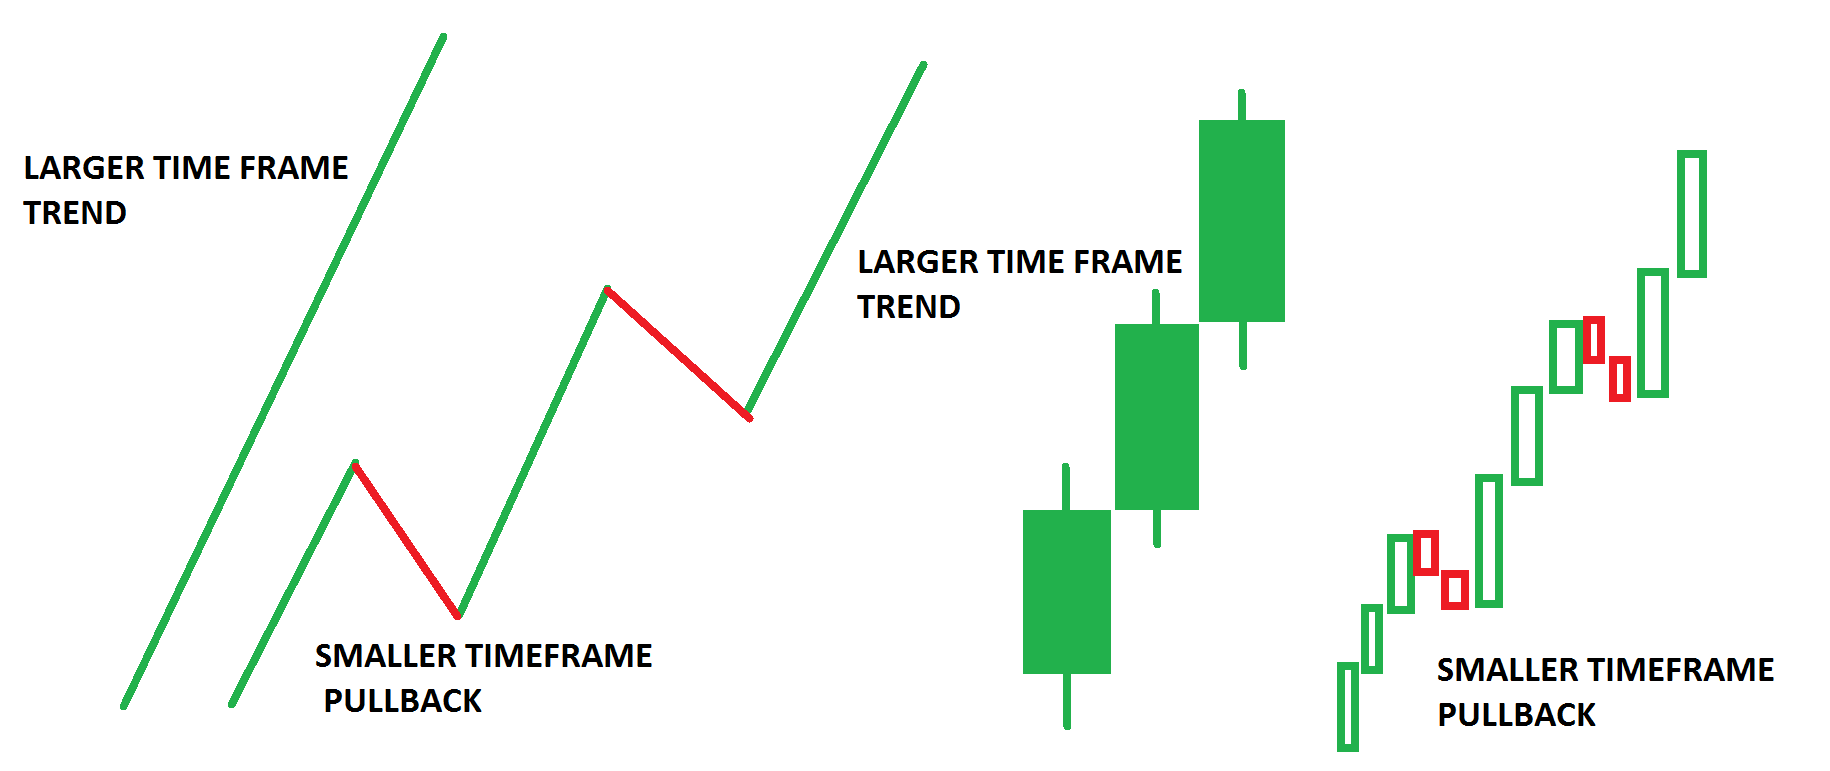 HOW TO USE MULTIPLE TIME FRAME?